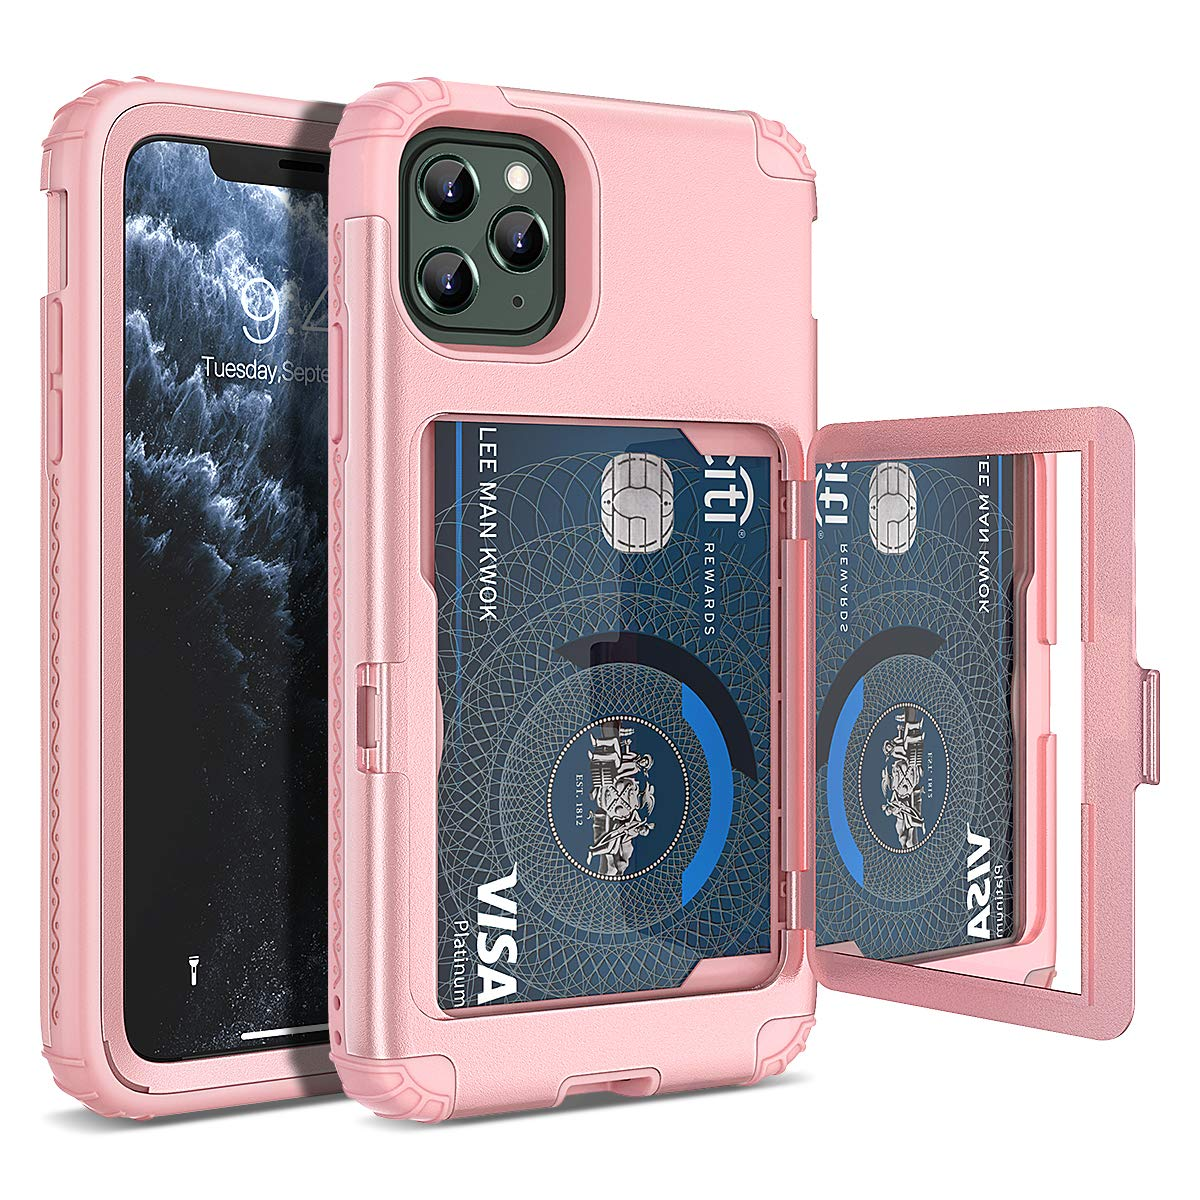 iPhone 11 Pro Max Wallet Case, WeLoveCase Defender Wallet Card Holder Cover with Hidden Mirror Three Layer Shockproof Heavy Duty Protection All-Round Armor Protective Case for iPhone 11 Pro Max Pink